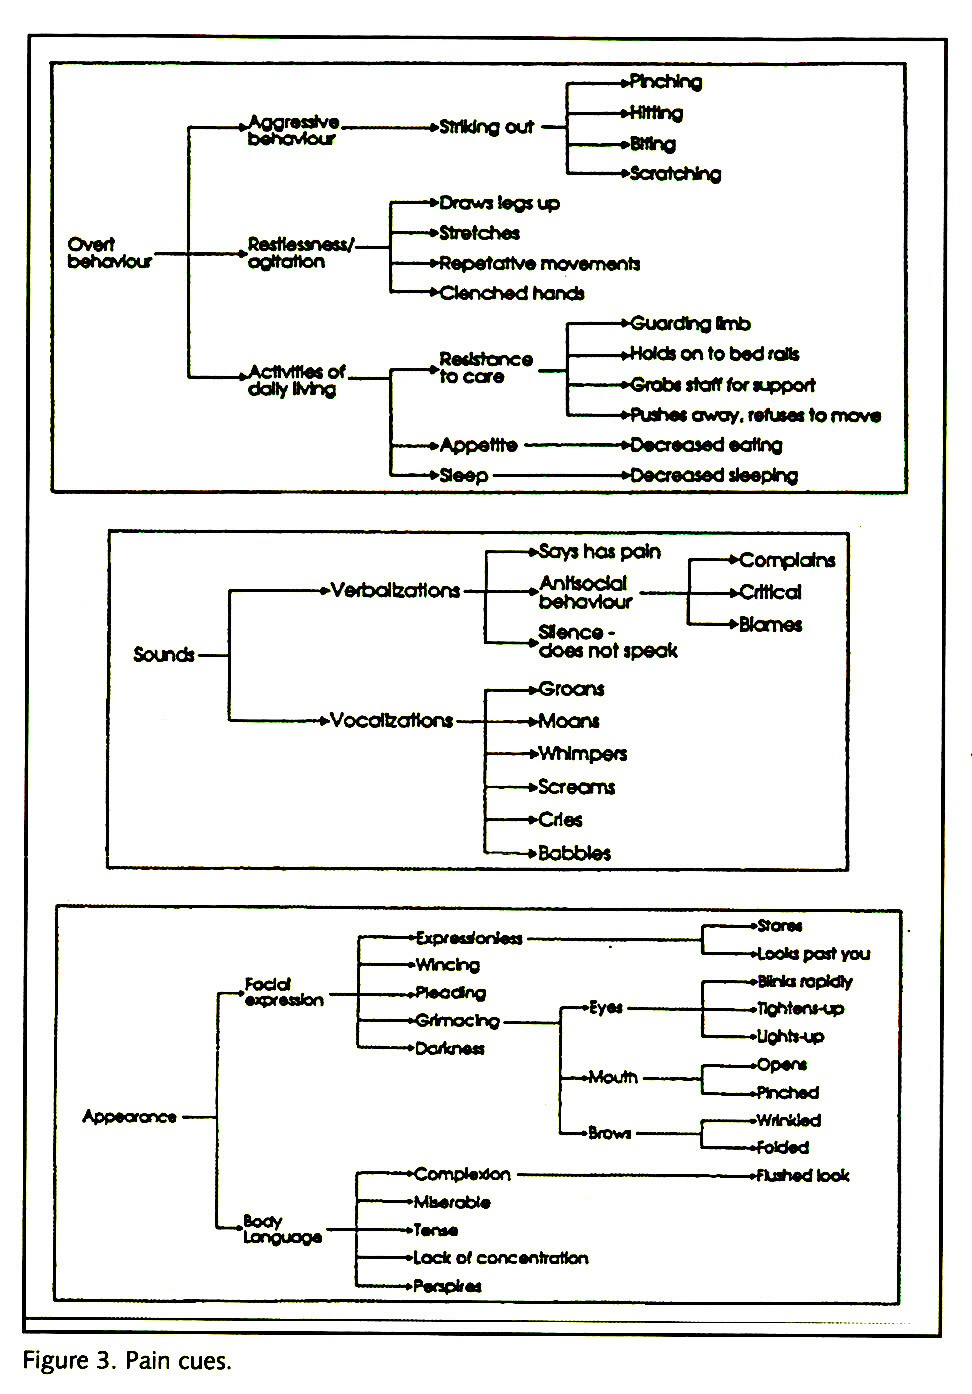 what are the similarities and differences between the nursing process and the research process What similarities and differences can you identify between the nursing process and the research process explain your answer introduction to nursing research - history and process of nursing research, evidence-based nursing practice, quantitative and qualitative research process.